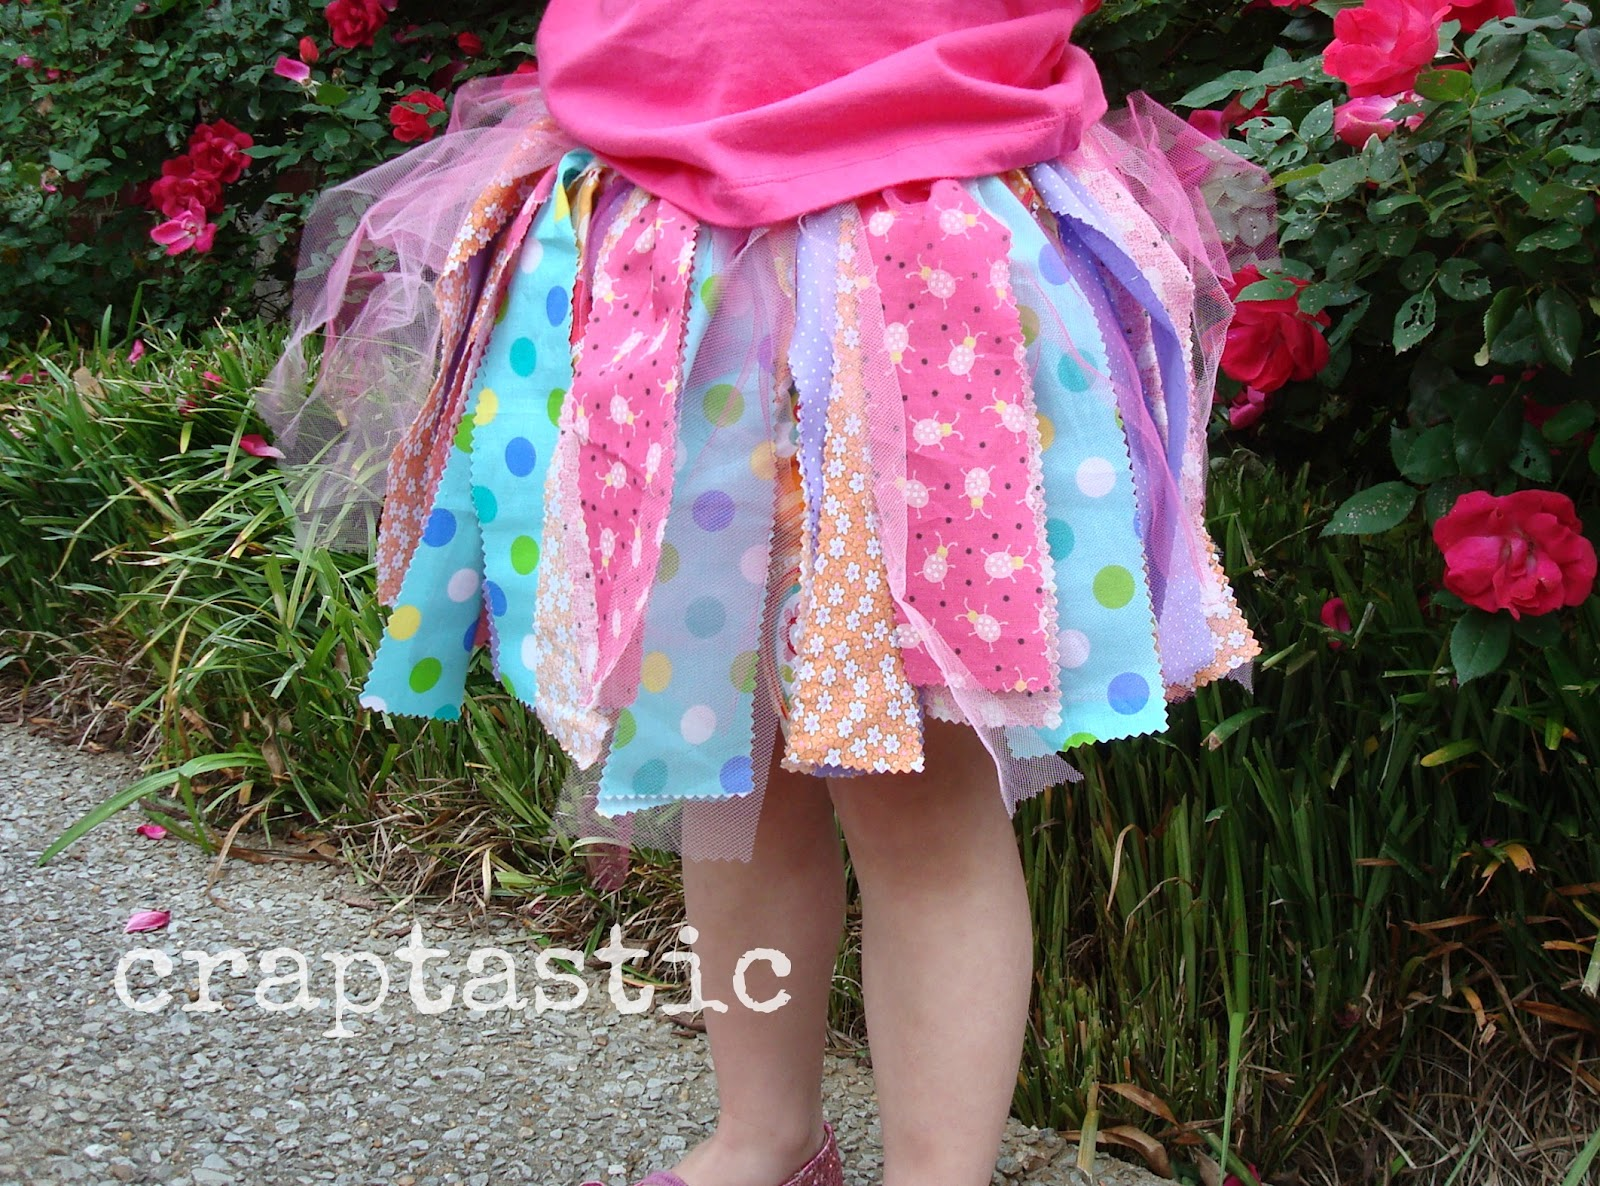 You don't need a sewing machine to make this fun and easy craft project. Old cotton sheets and fabric scraps are knotted around elastic to make this darling tutu skirt.